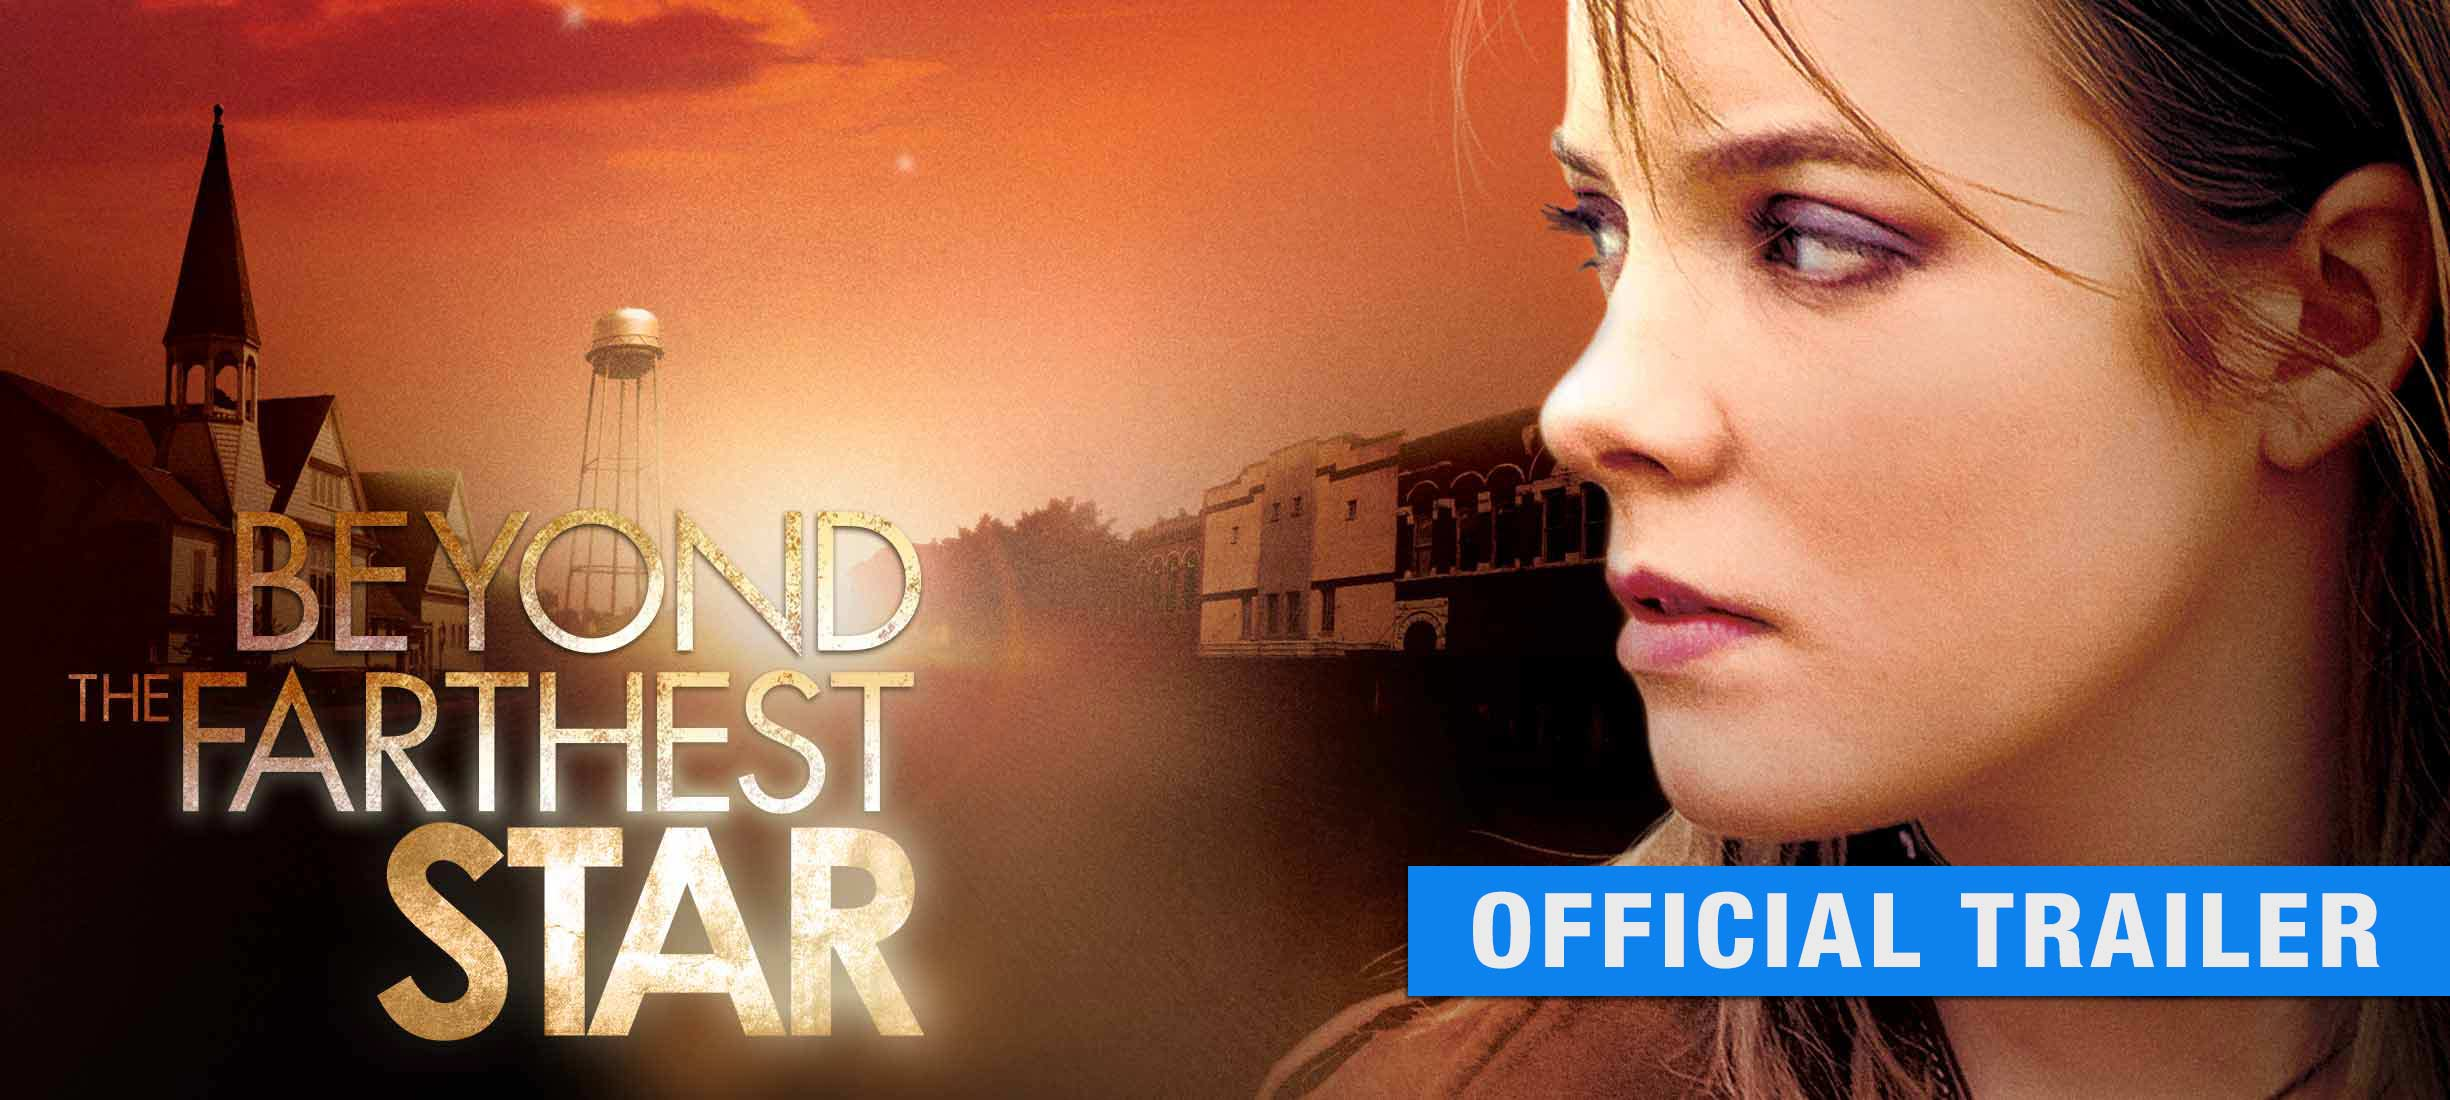 Beyond the Farthest Star: Trailer